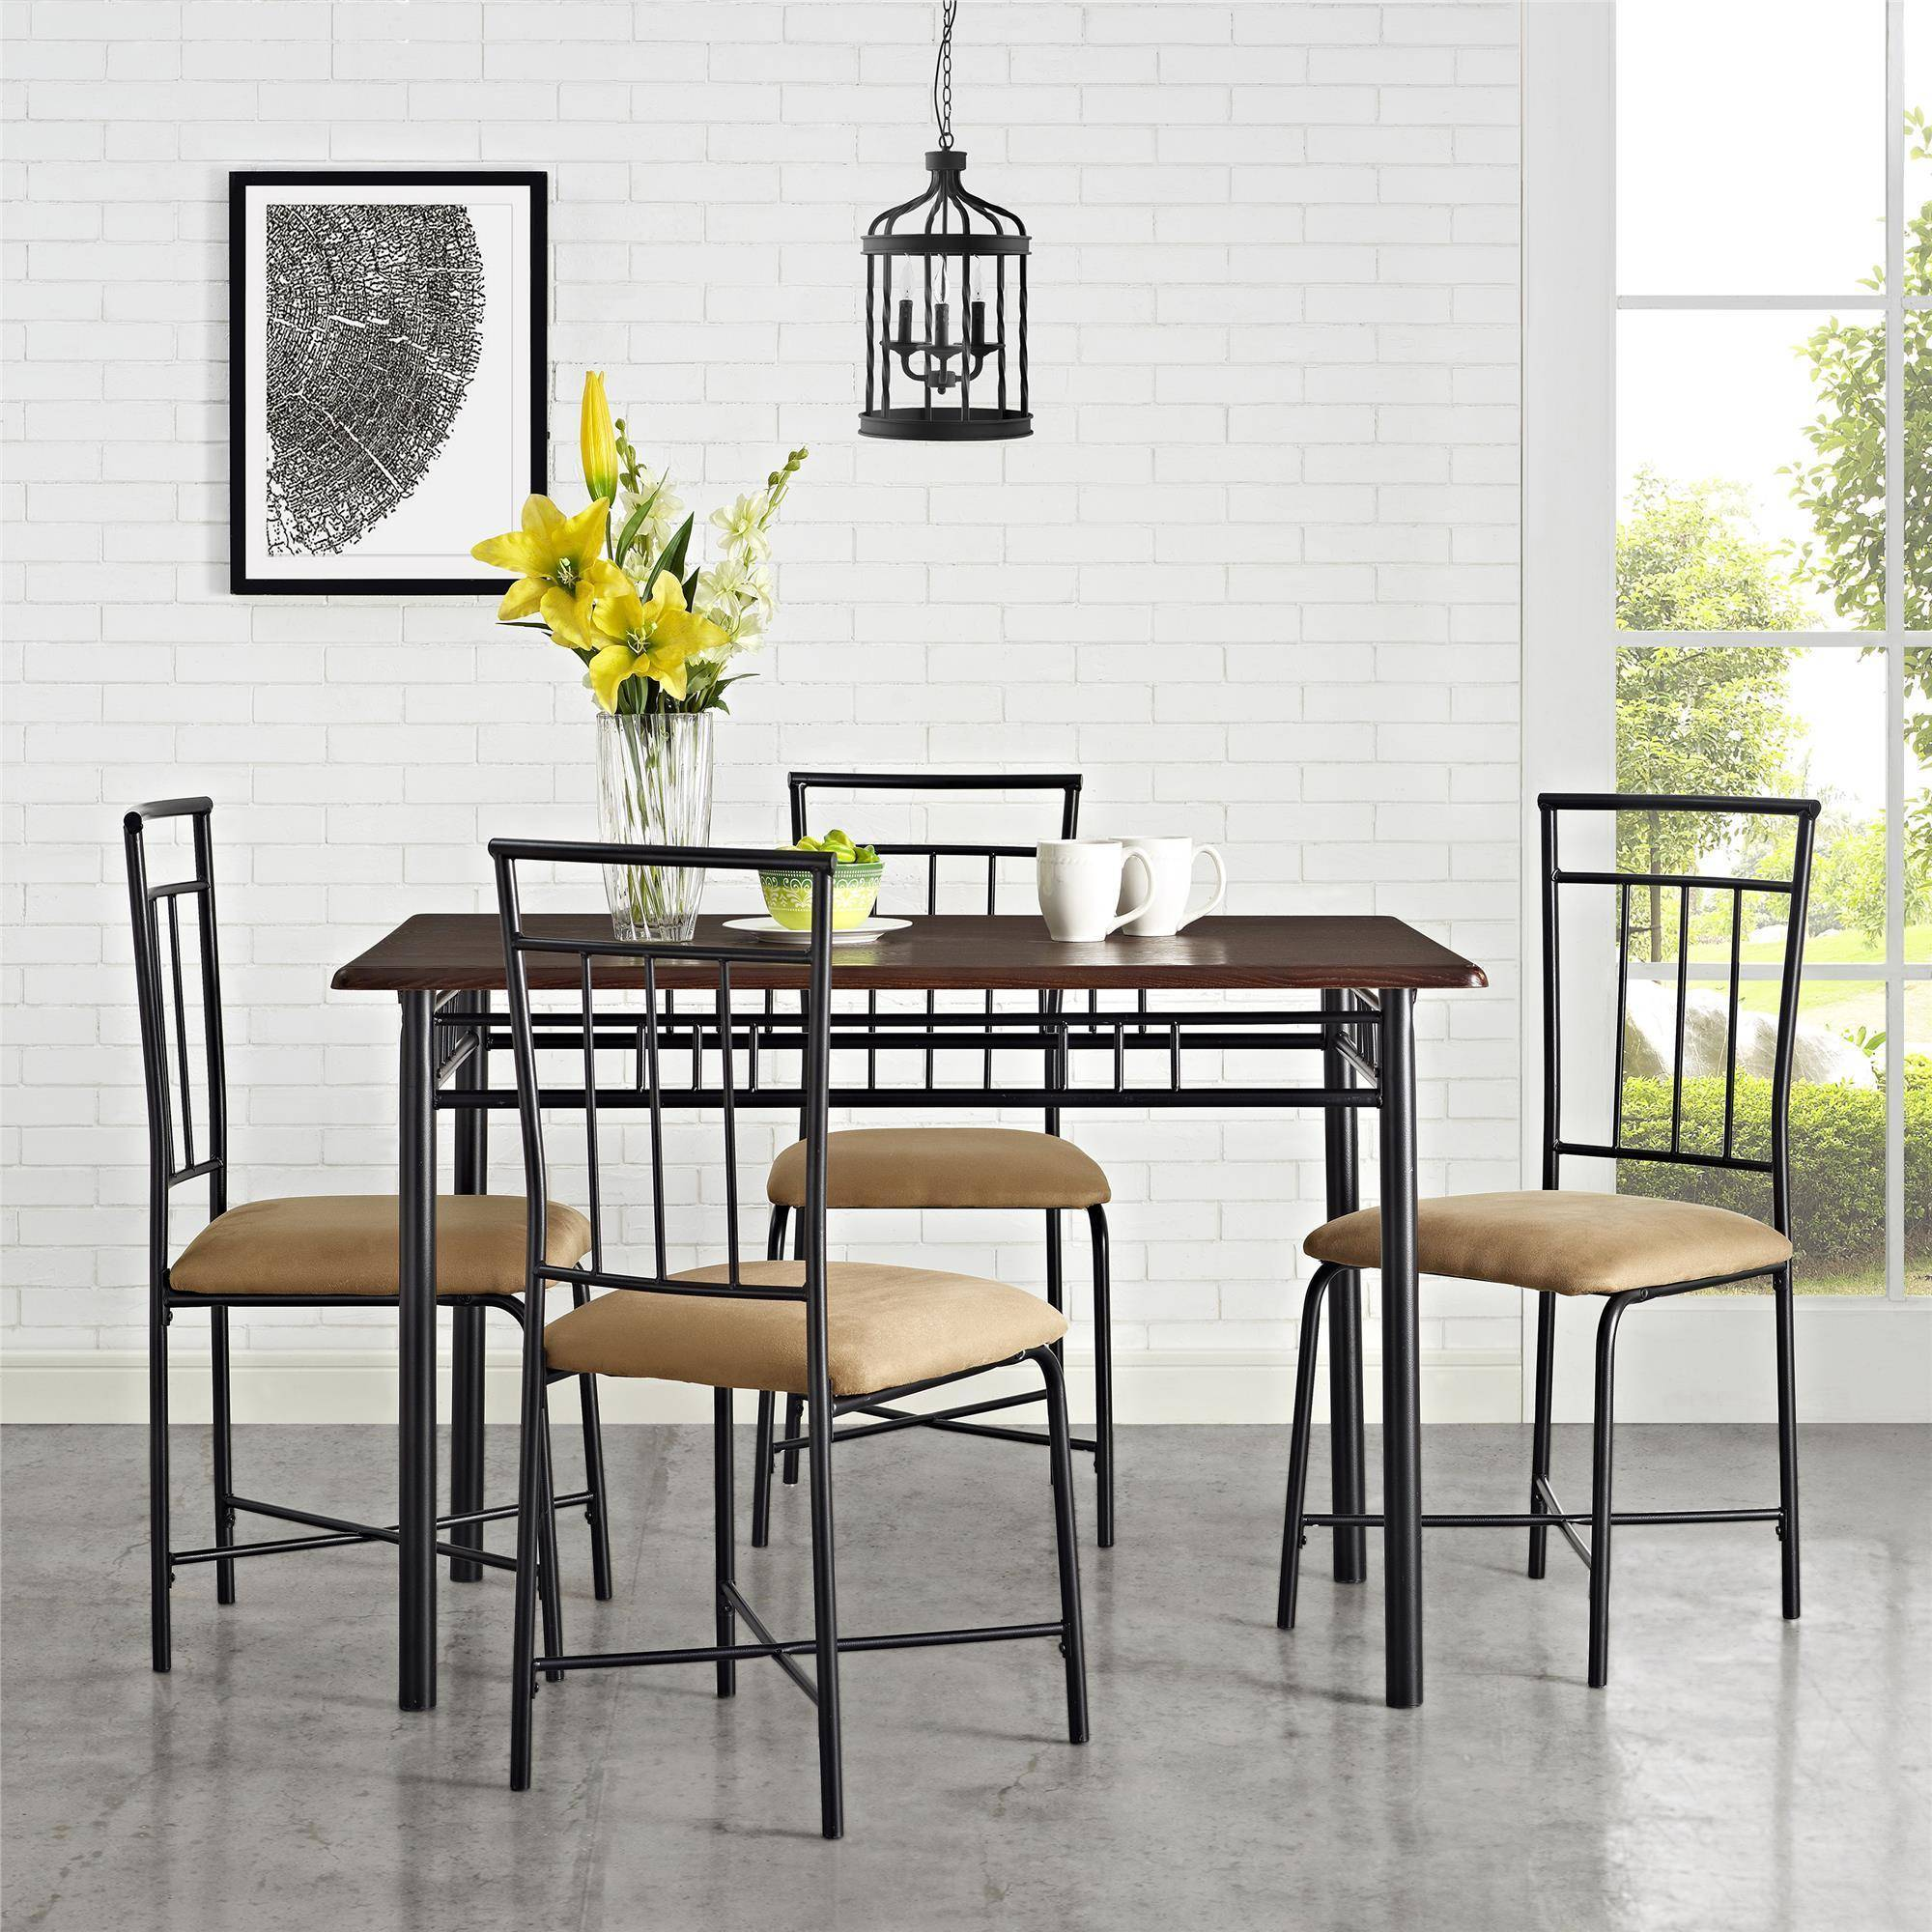 Mainstays 5 Piece Dining Set, Multiple Colors   Walmart.com